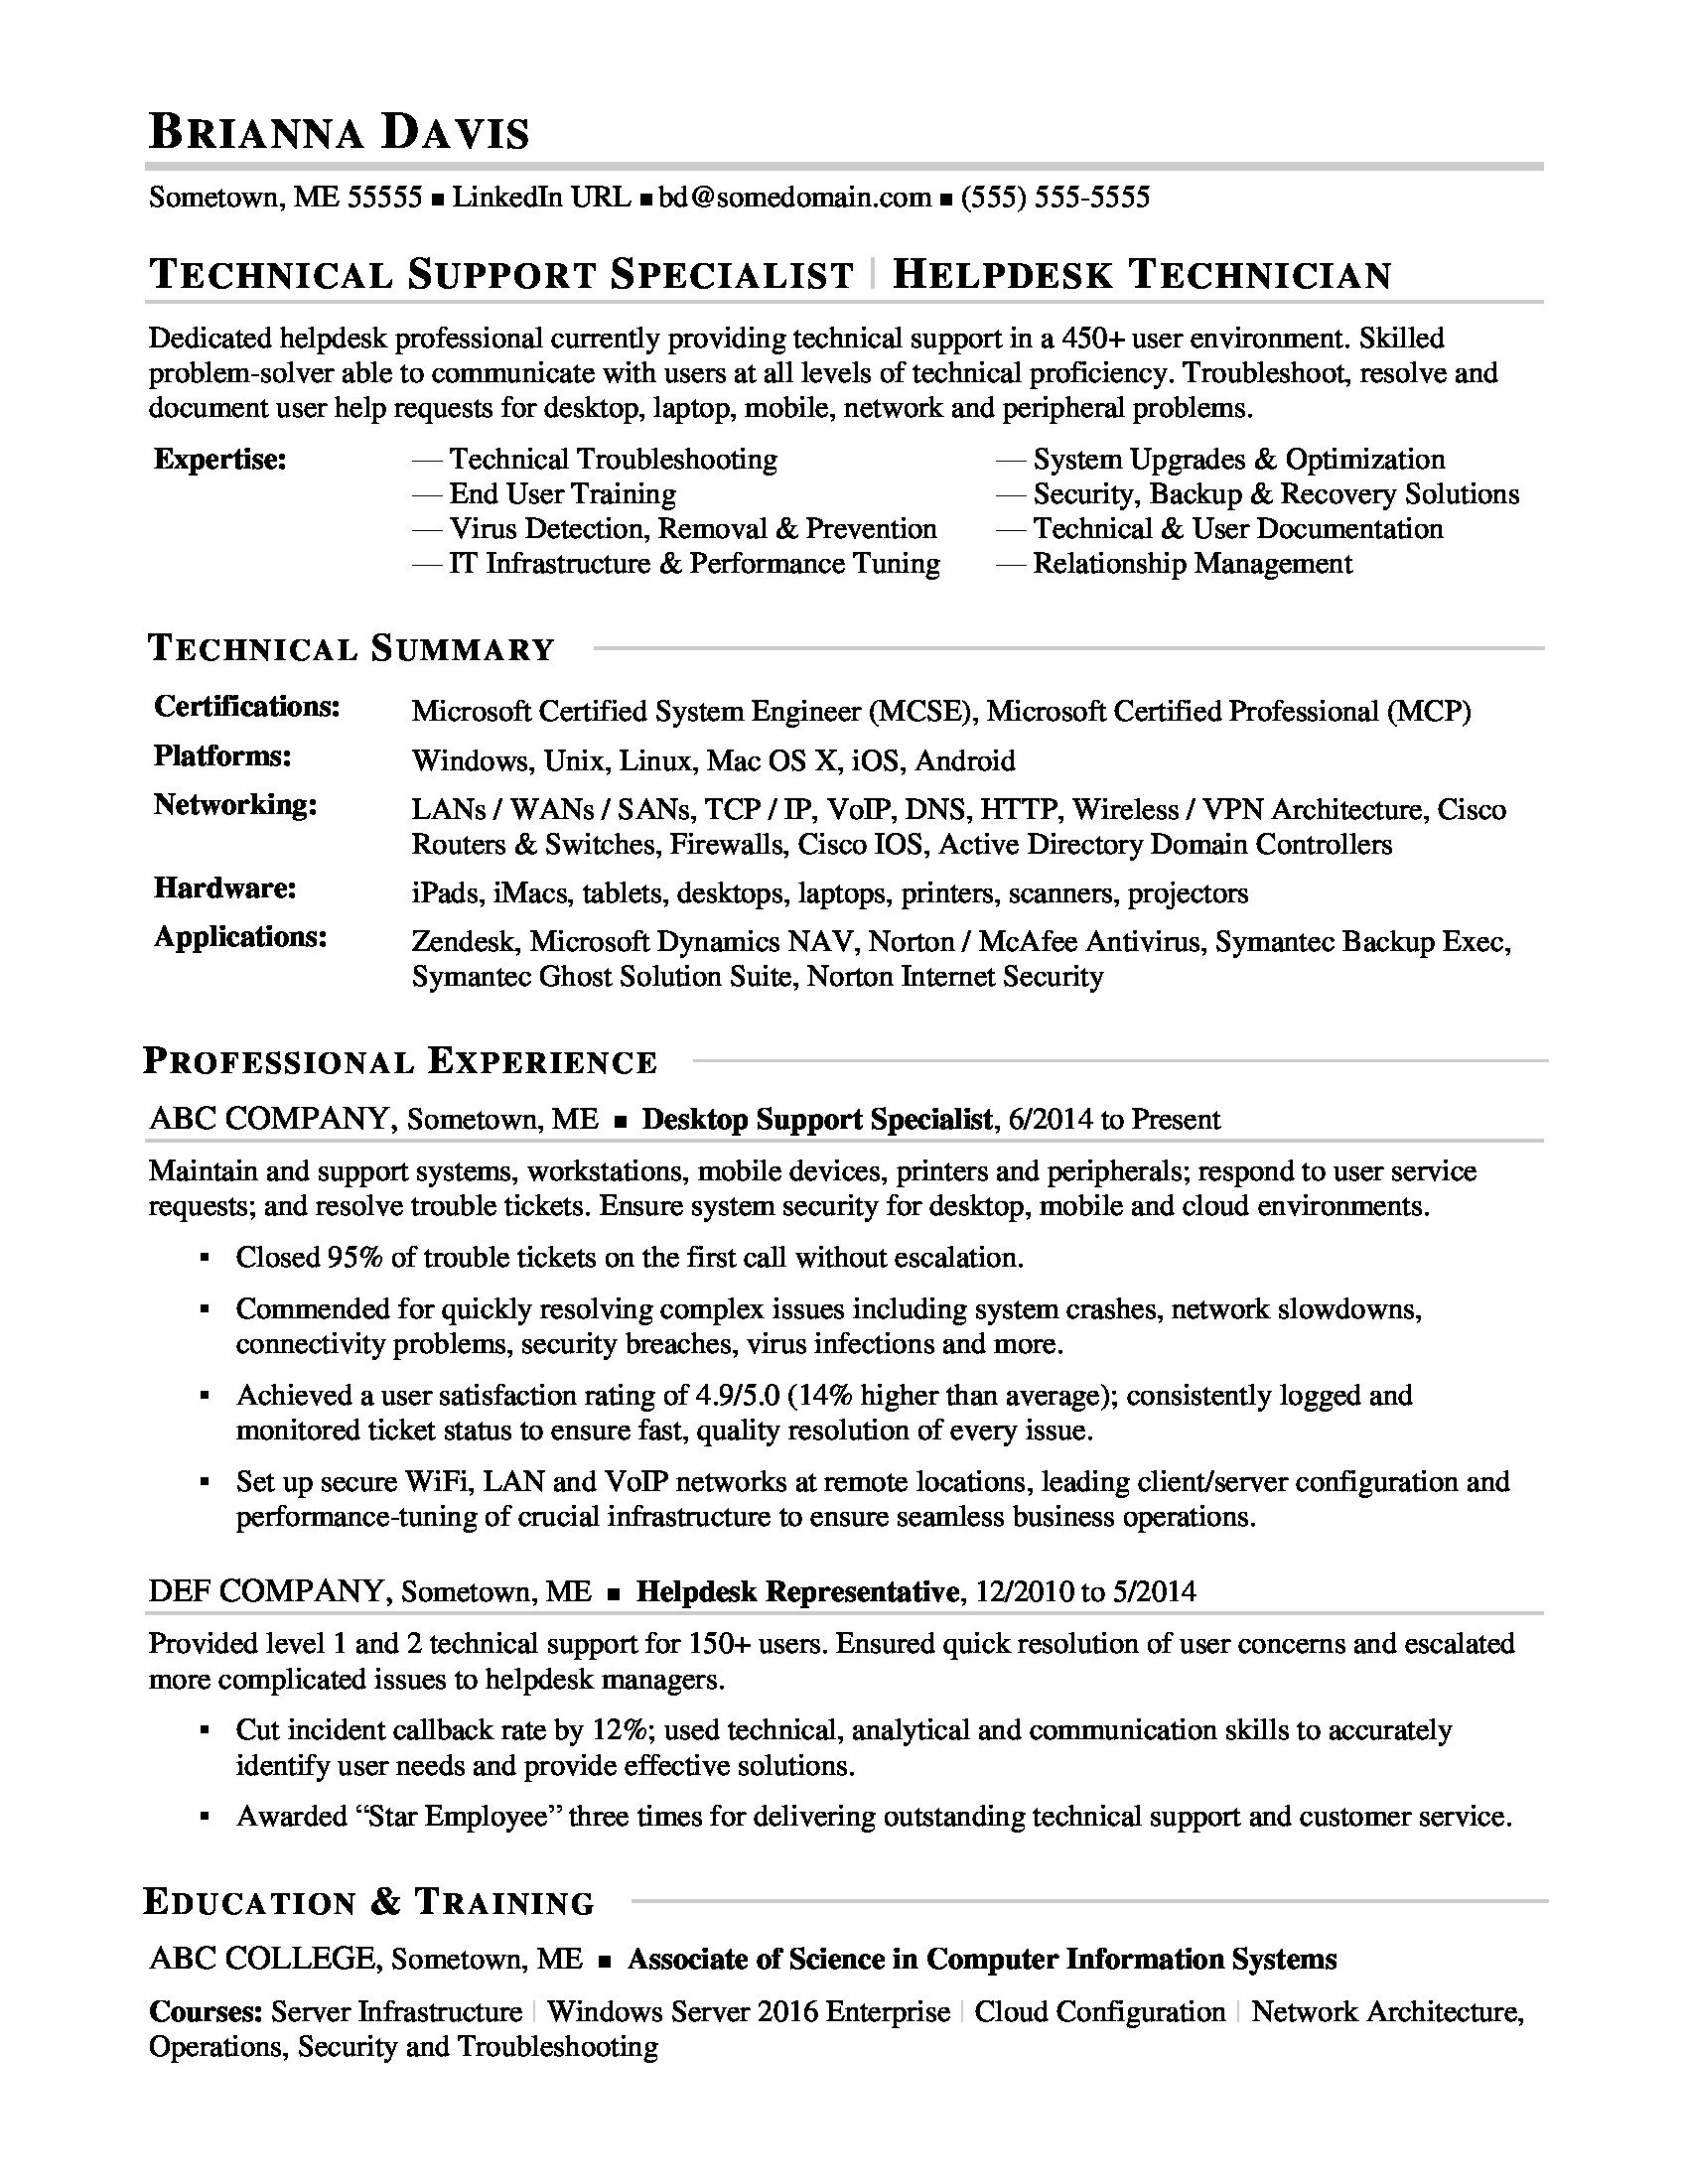 desktop support resume ideas technician sample physical education template data entry Resume Desktop Support Technician Resume Sample